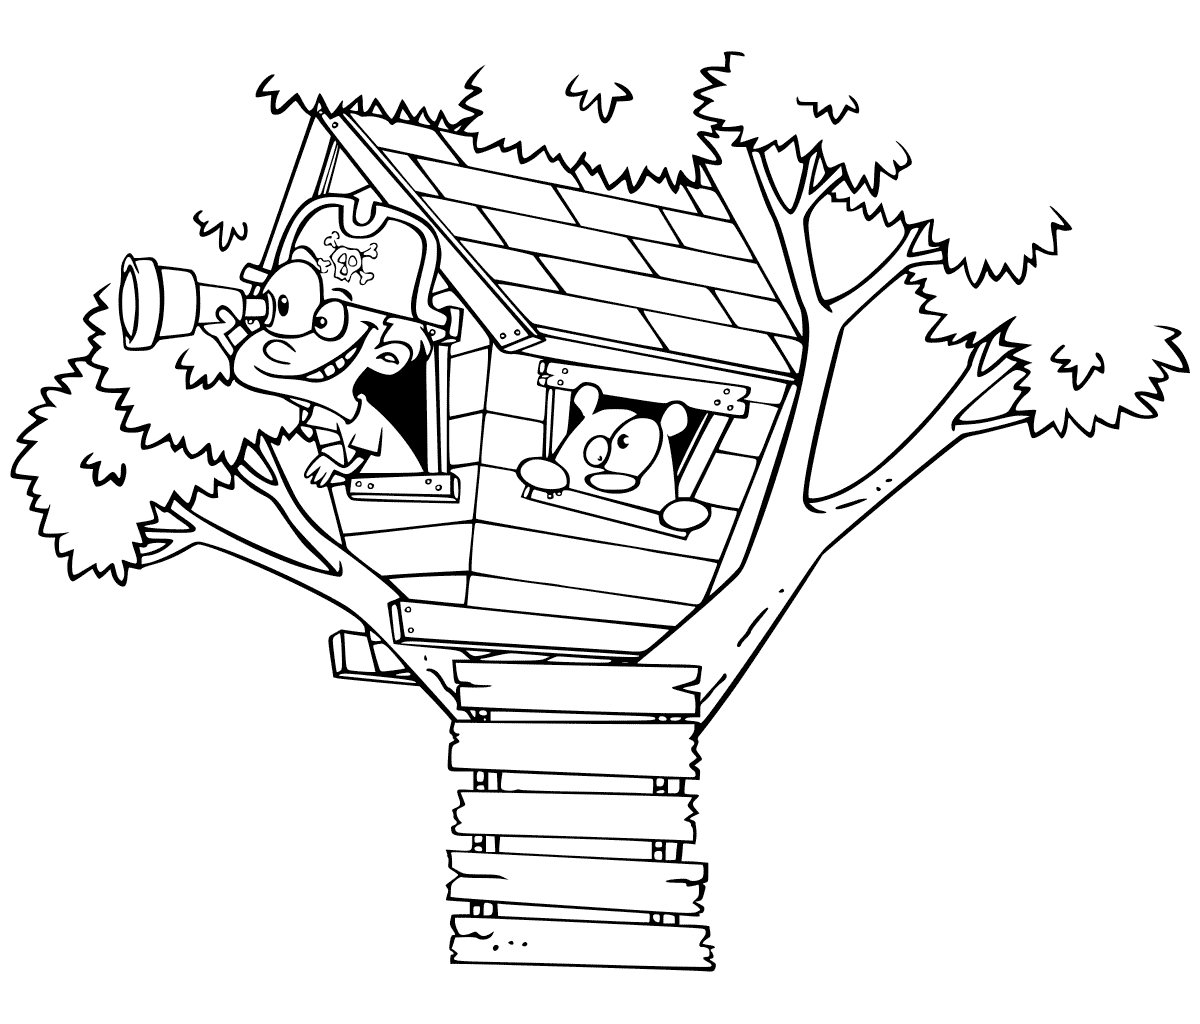 treehouse coloring pages treehouse coloring pages best coloring pages for kids treehouse coloring pages 1 1